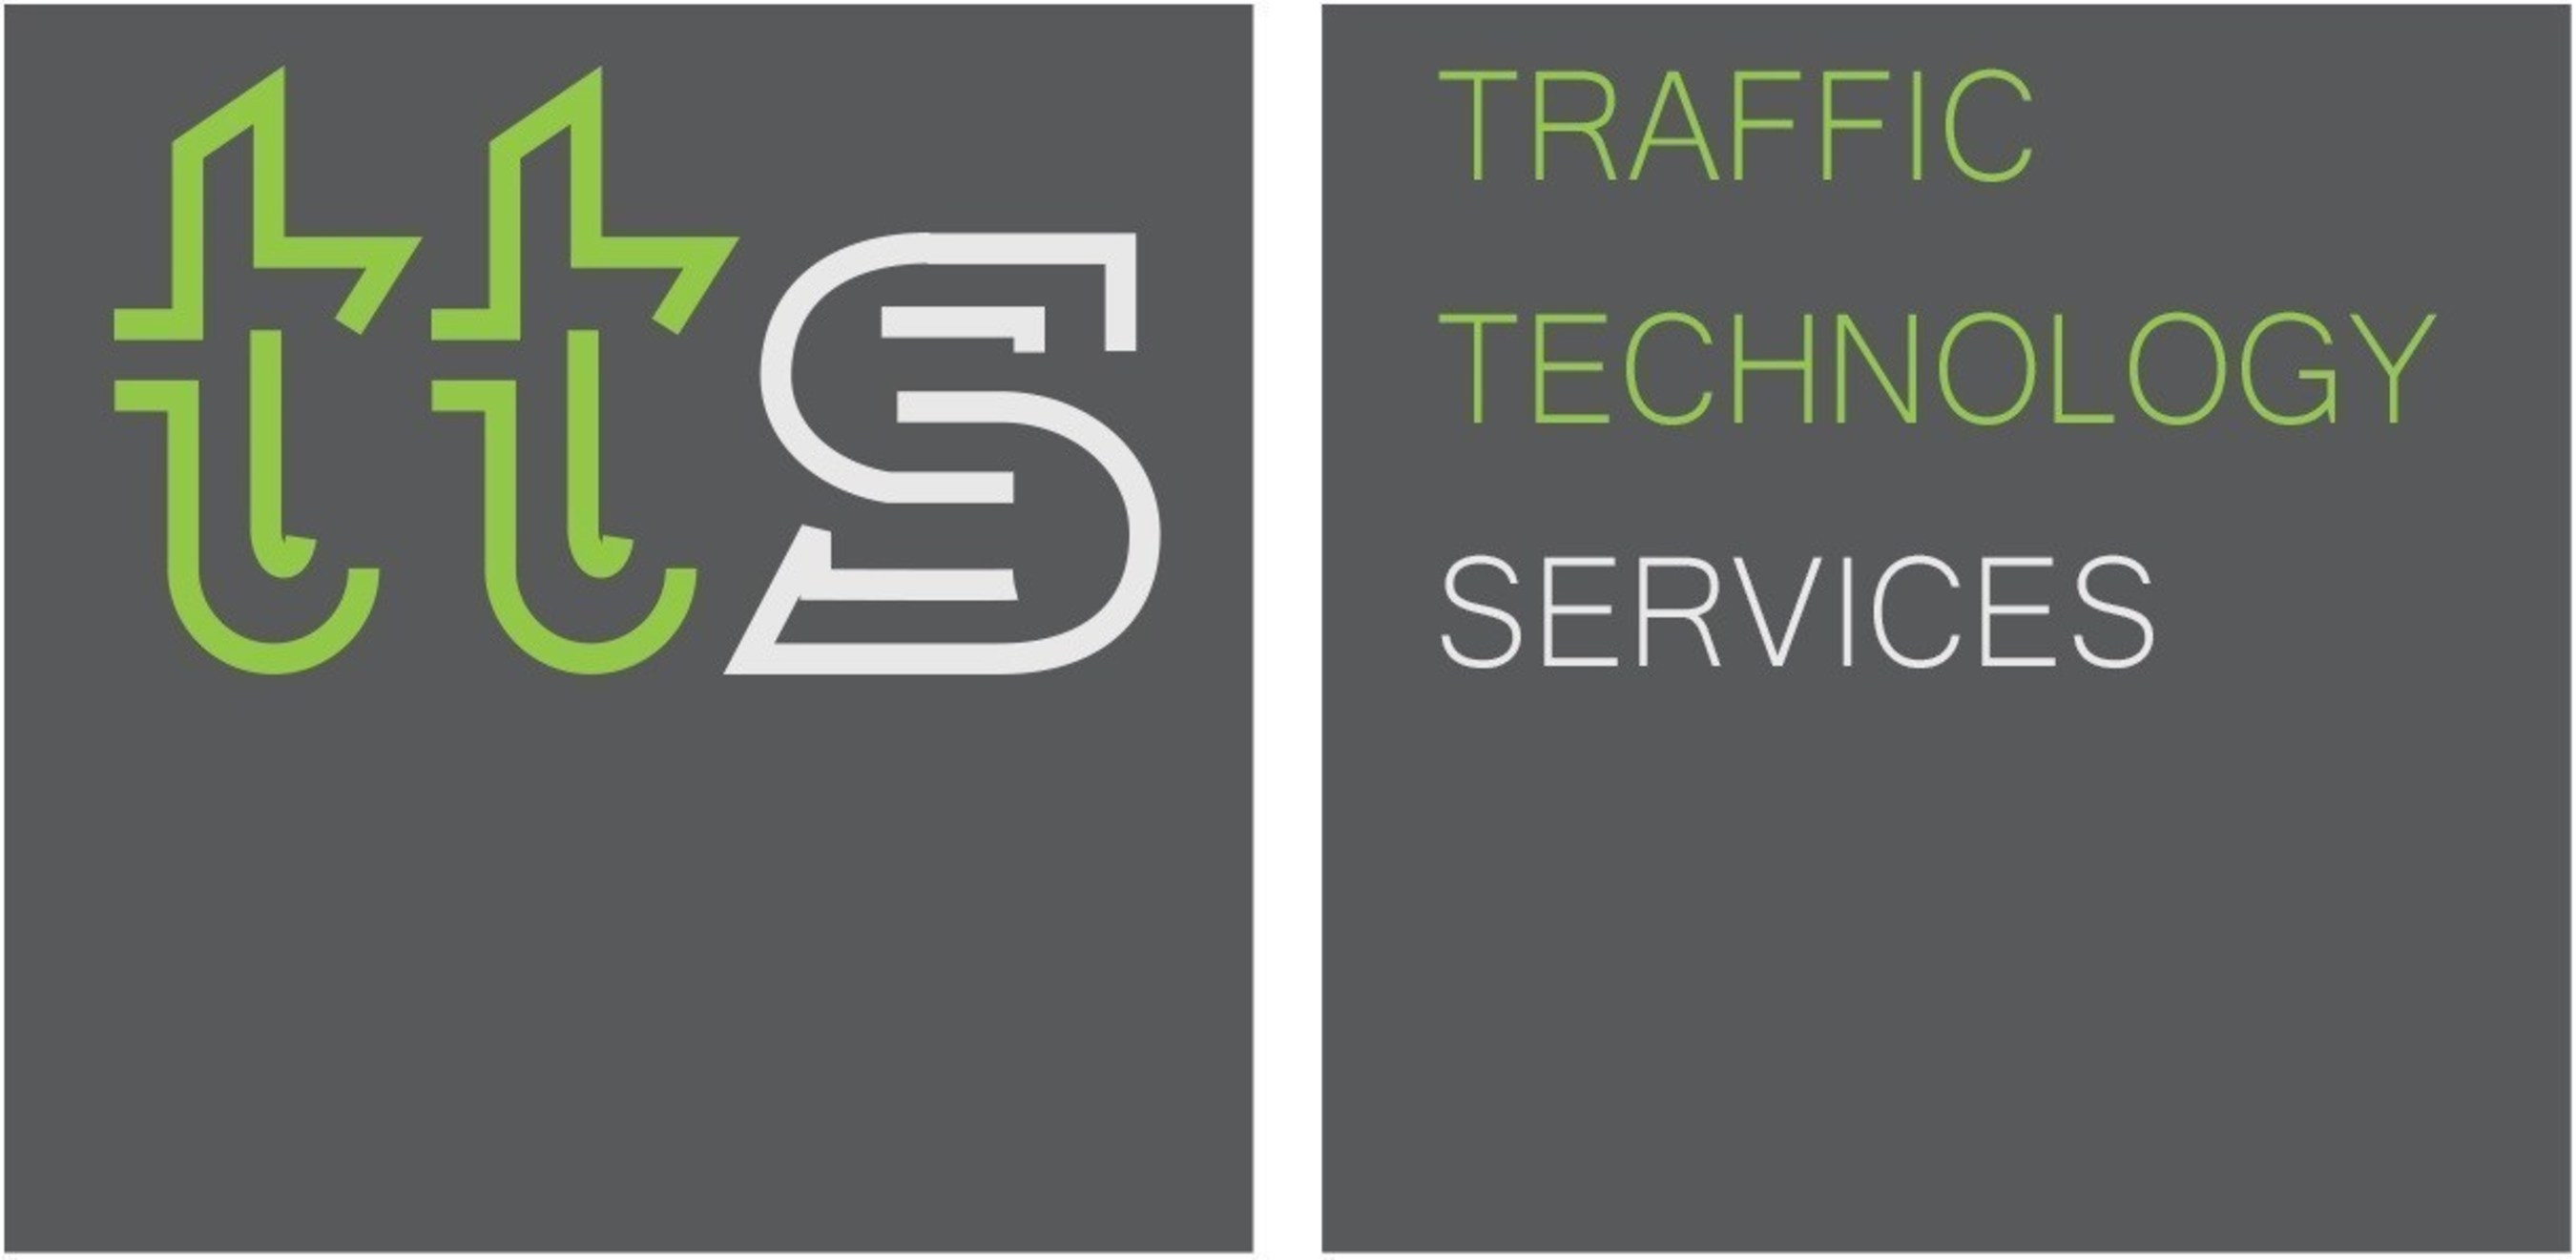 Traffic Technology Services Expands to Europe